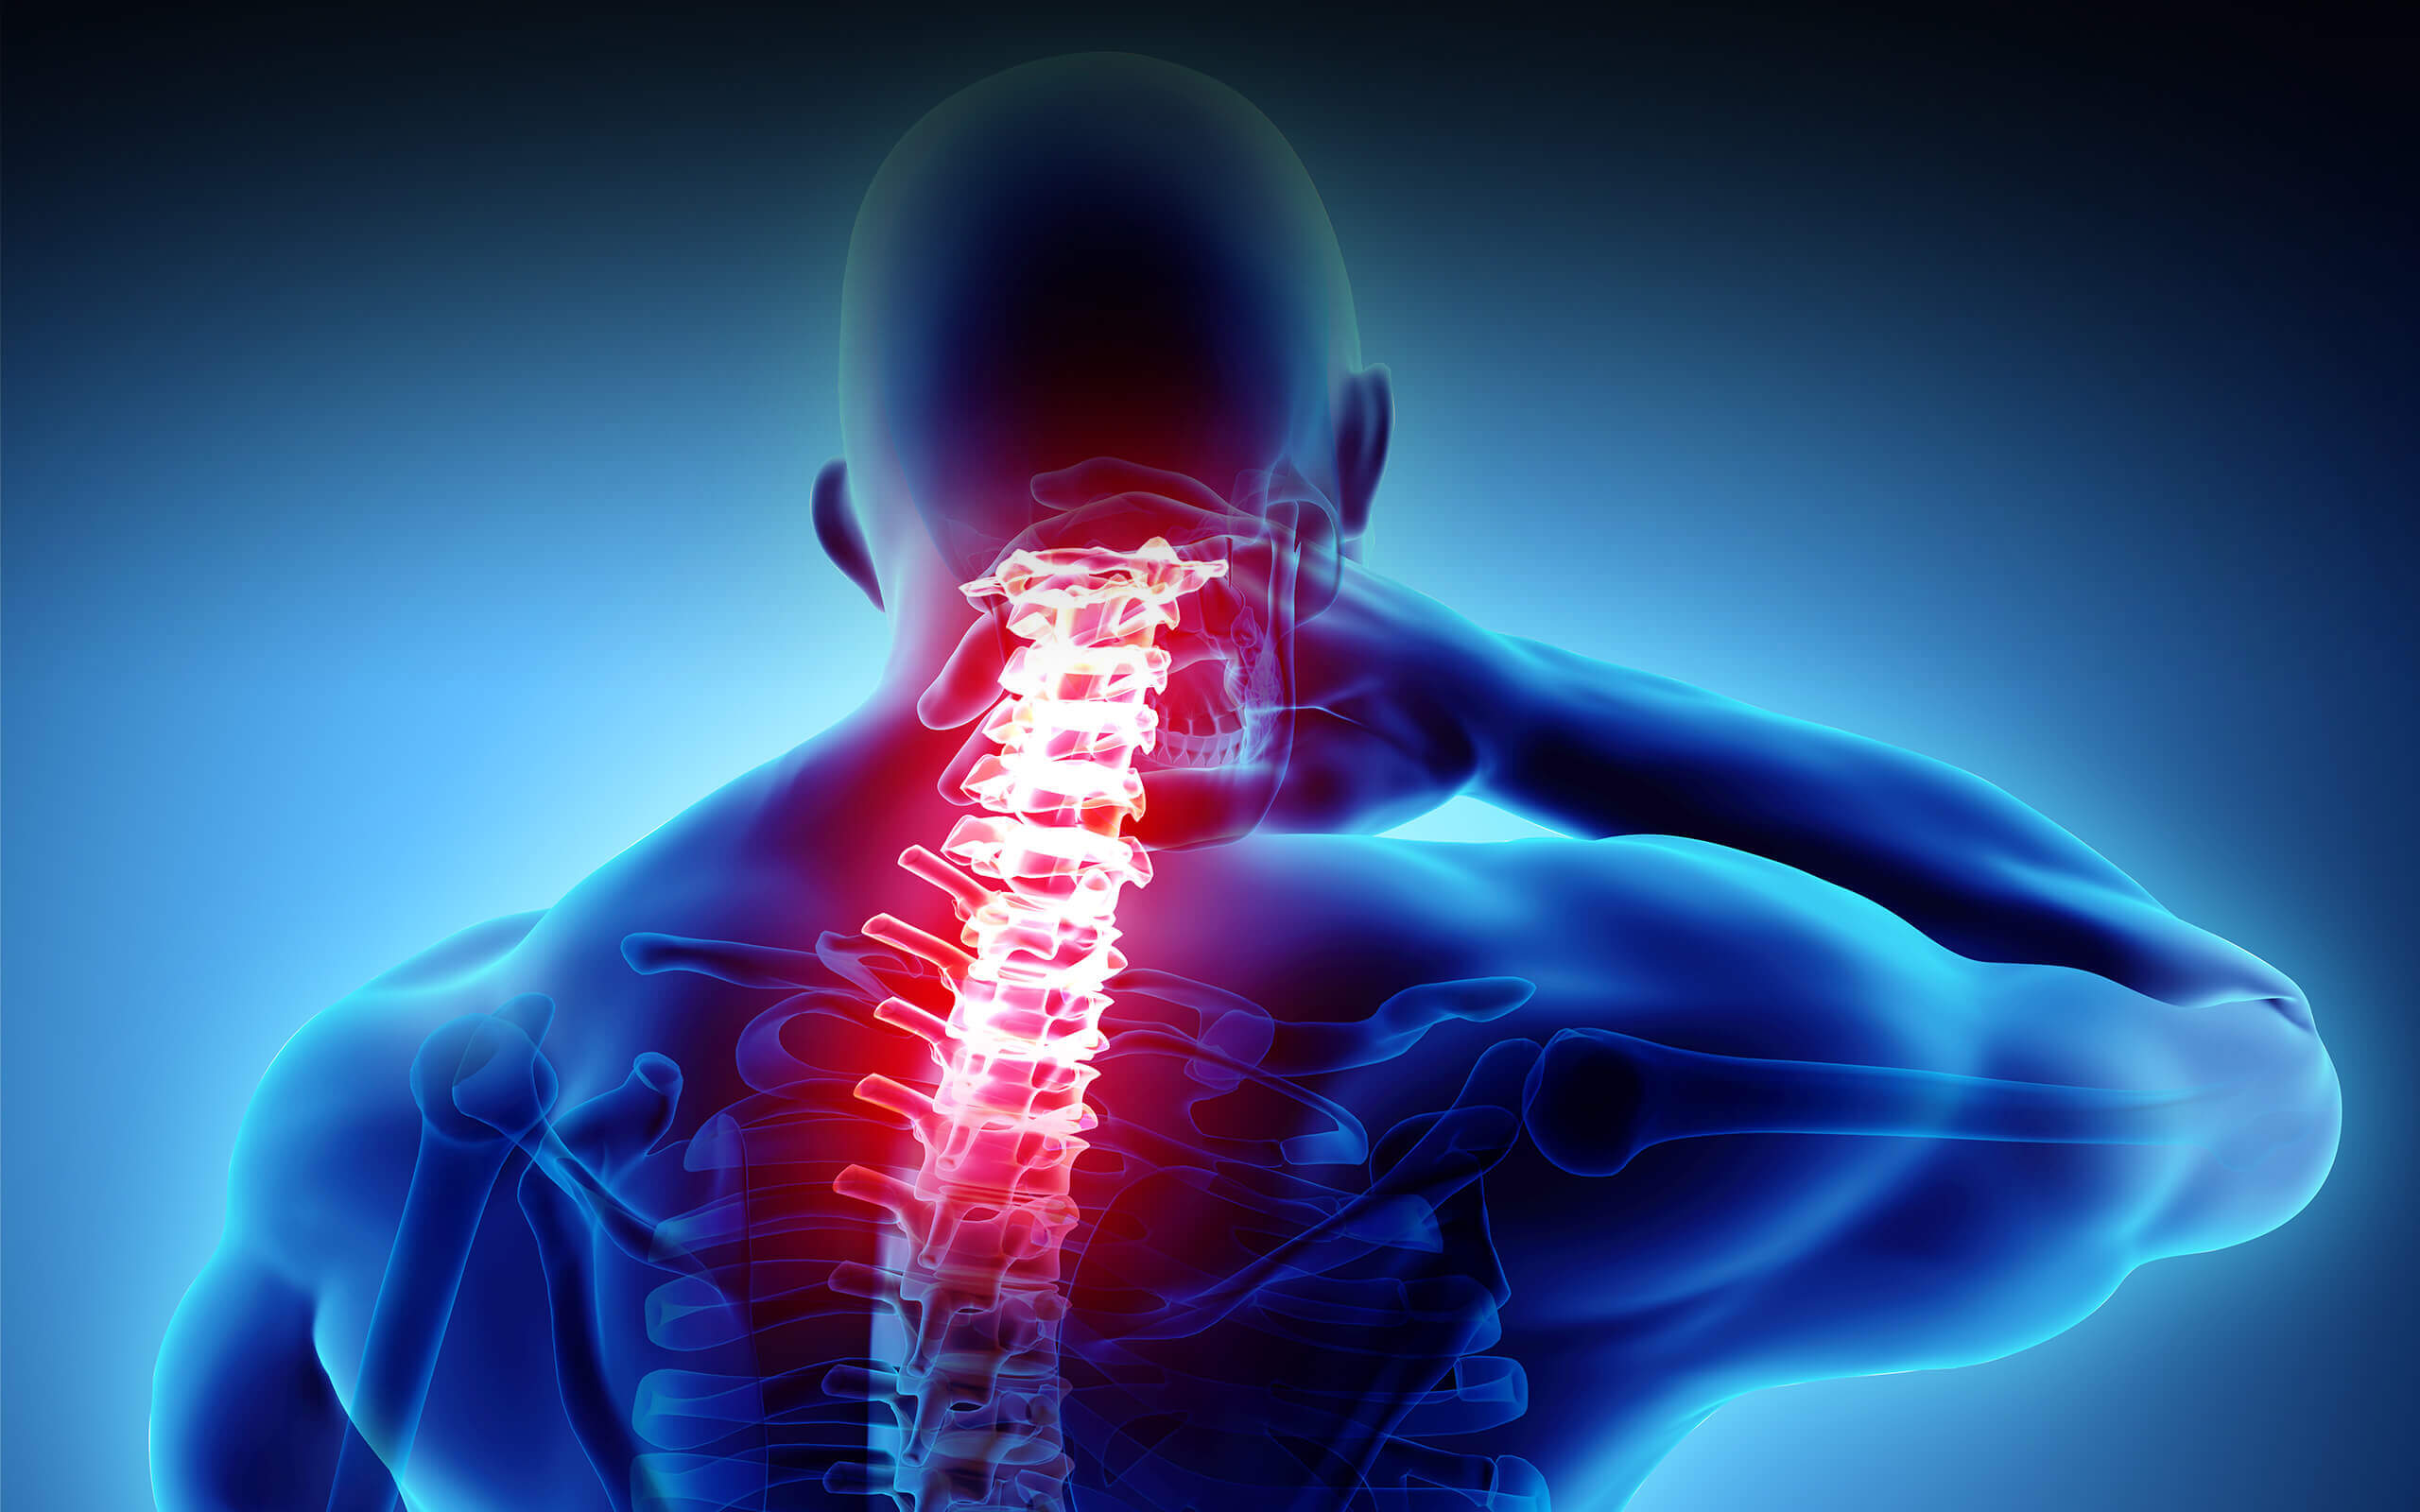 Abstract impression of chronic pain in the spine